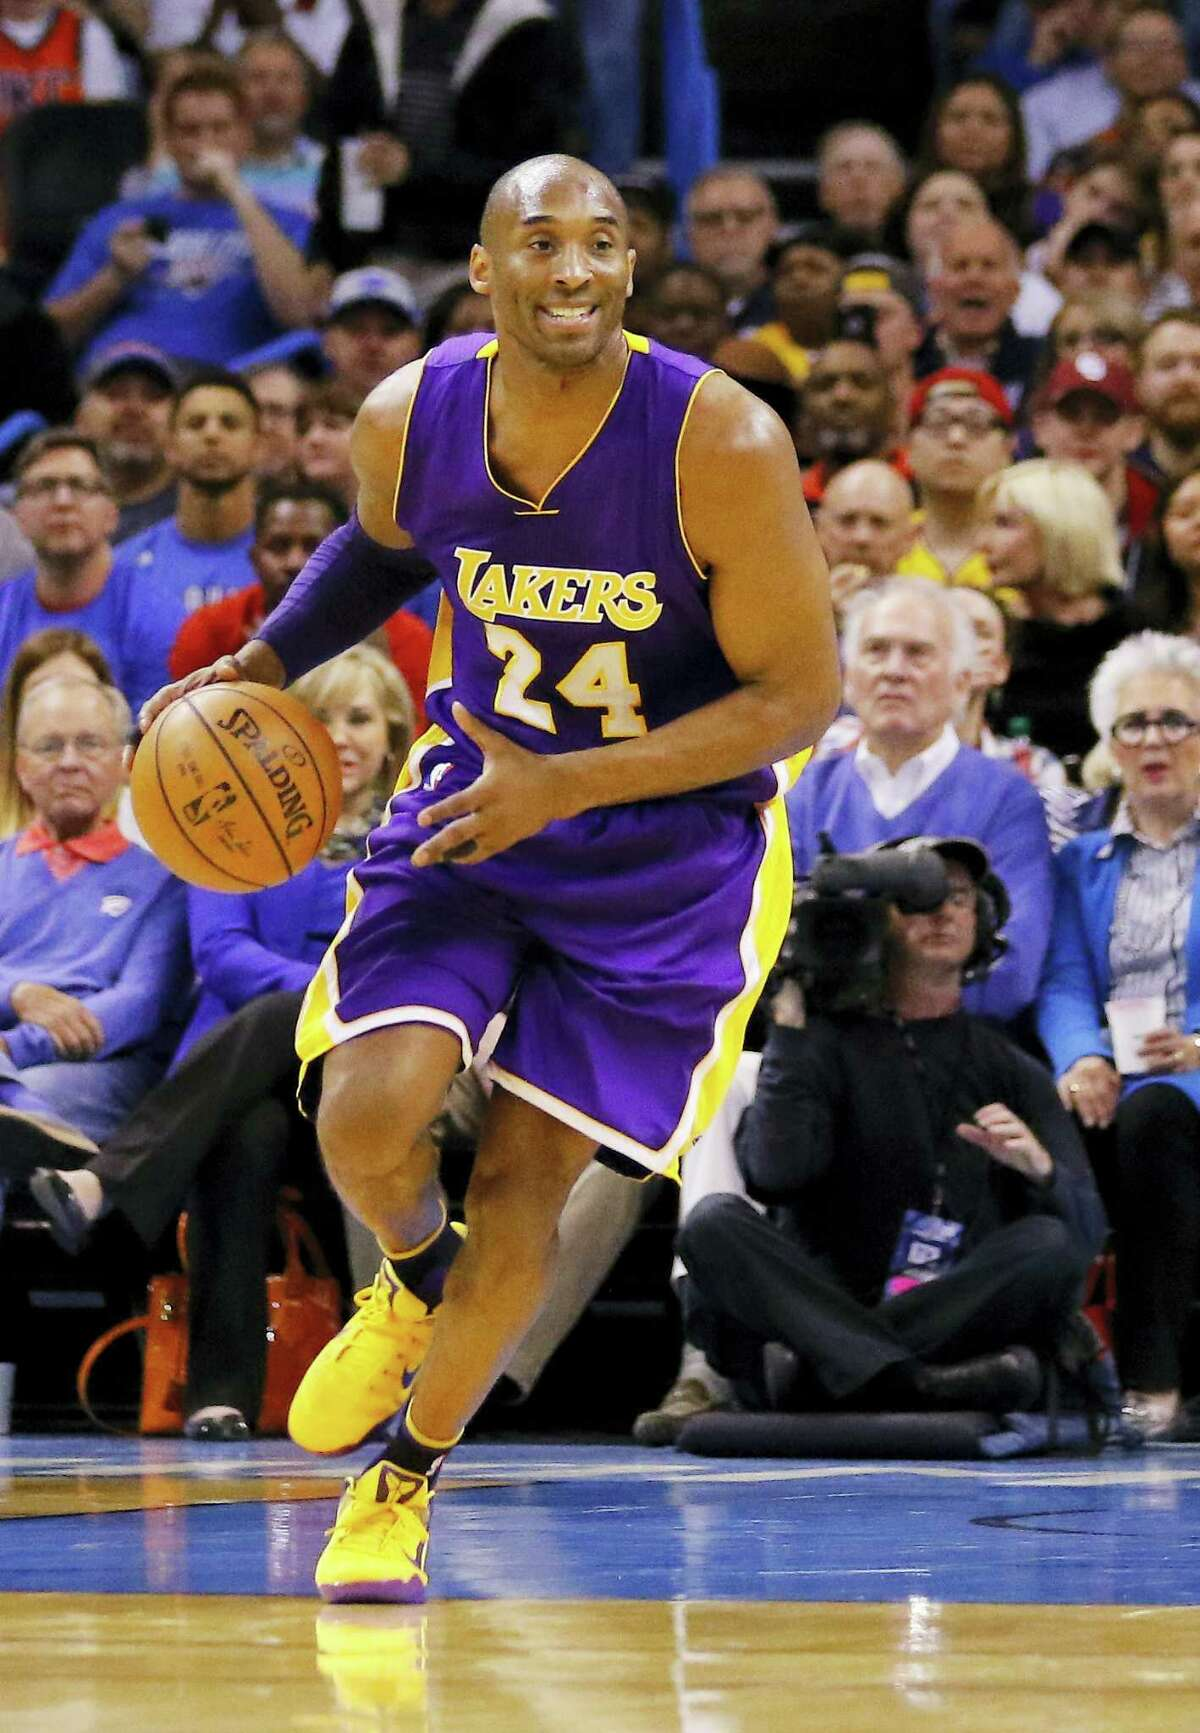 Los Angeles Lakers forward Kobe Bryant drives down the court during a recent game.